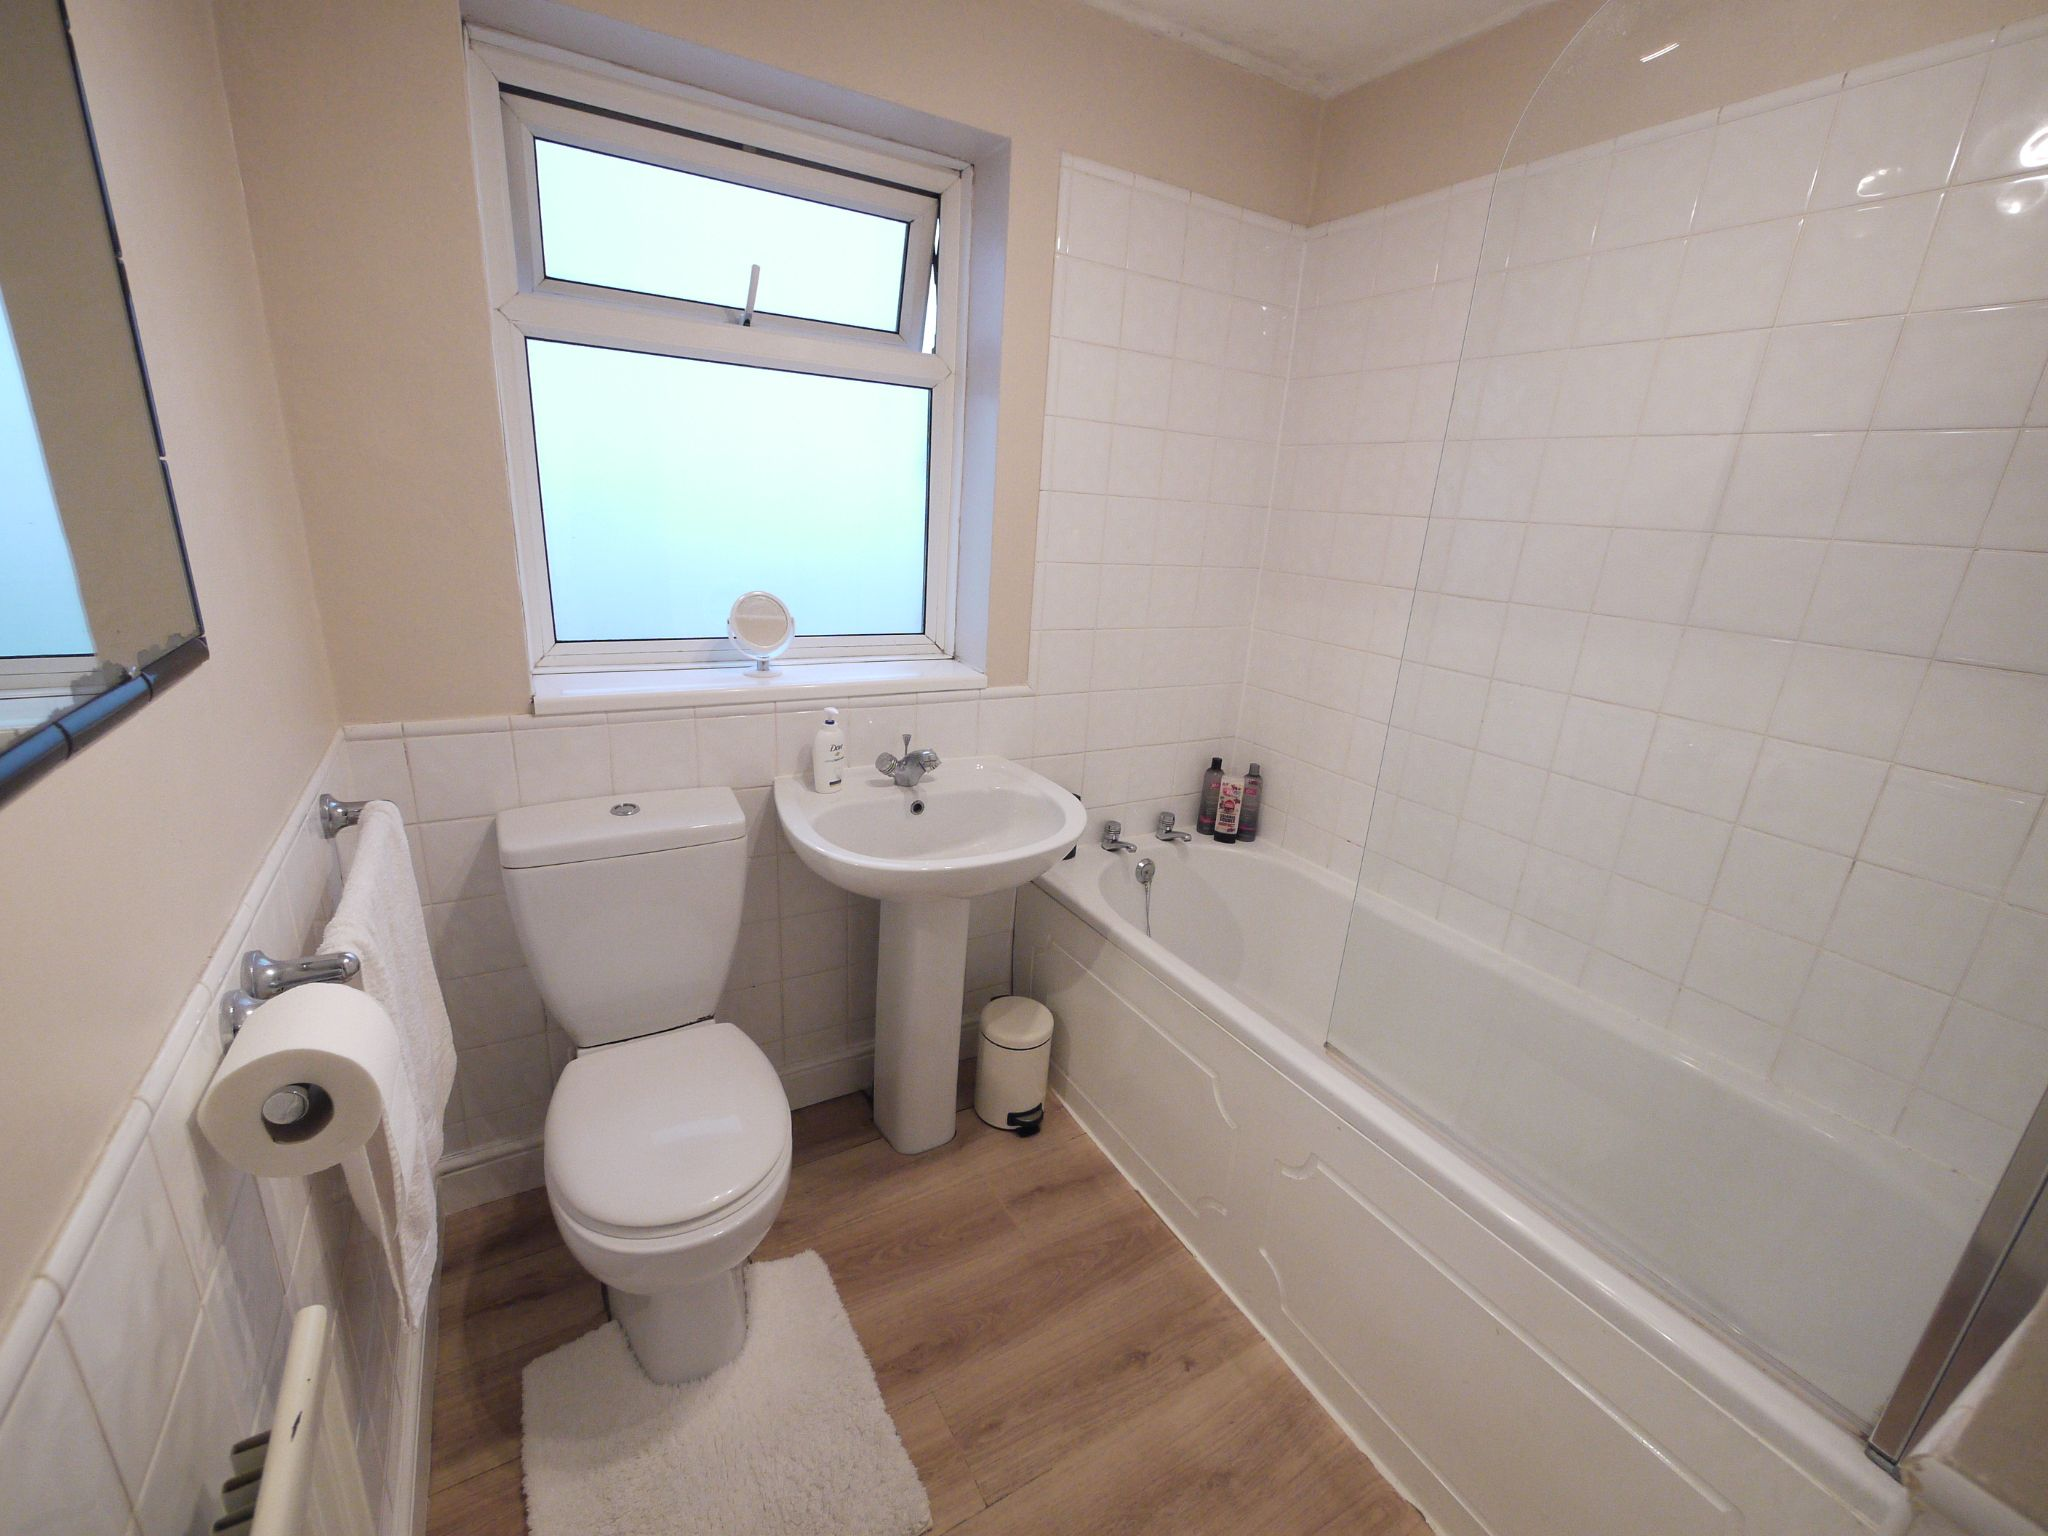 4 bedroom semi-detached house SSTC in Brighouse - Bathroom.